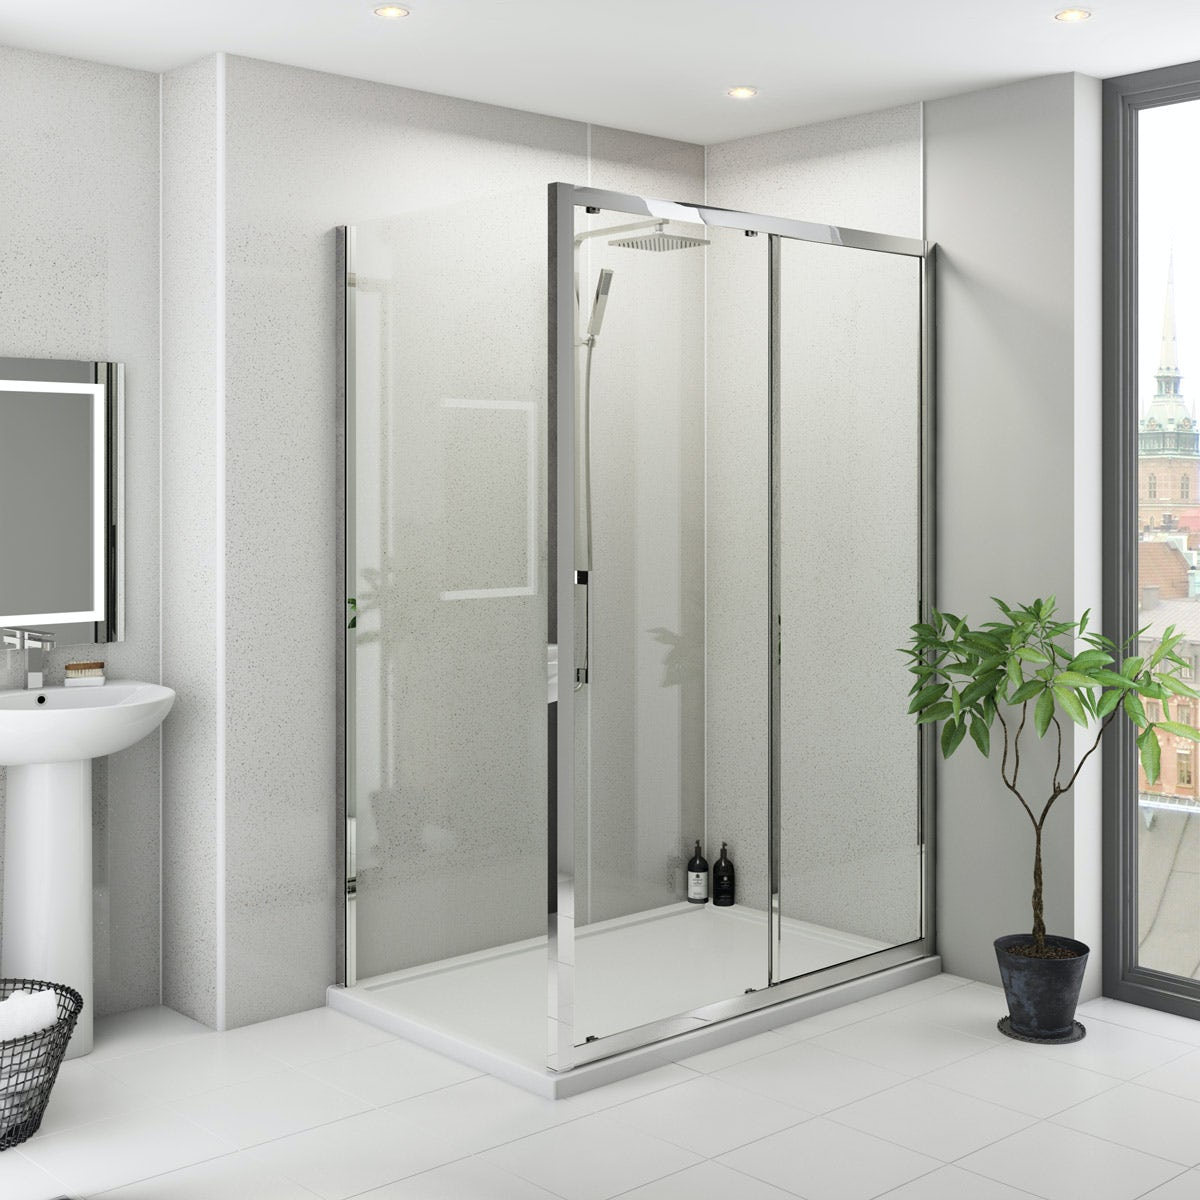 Multipanel Classic Blizzard unlipped shower wall panel 2400 x 1200